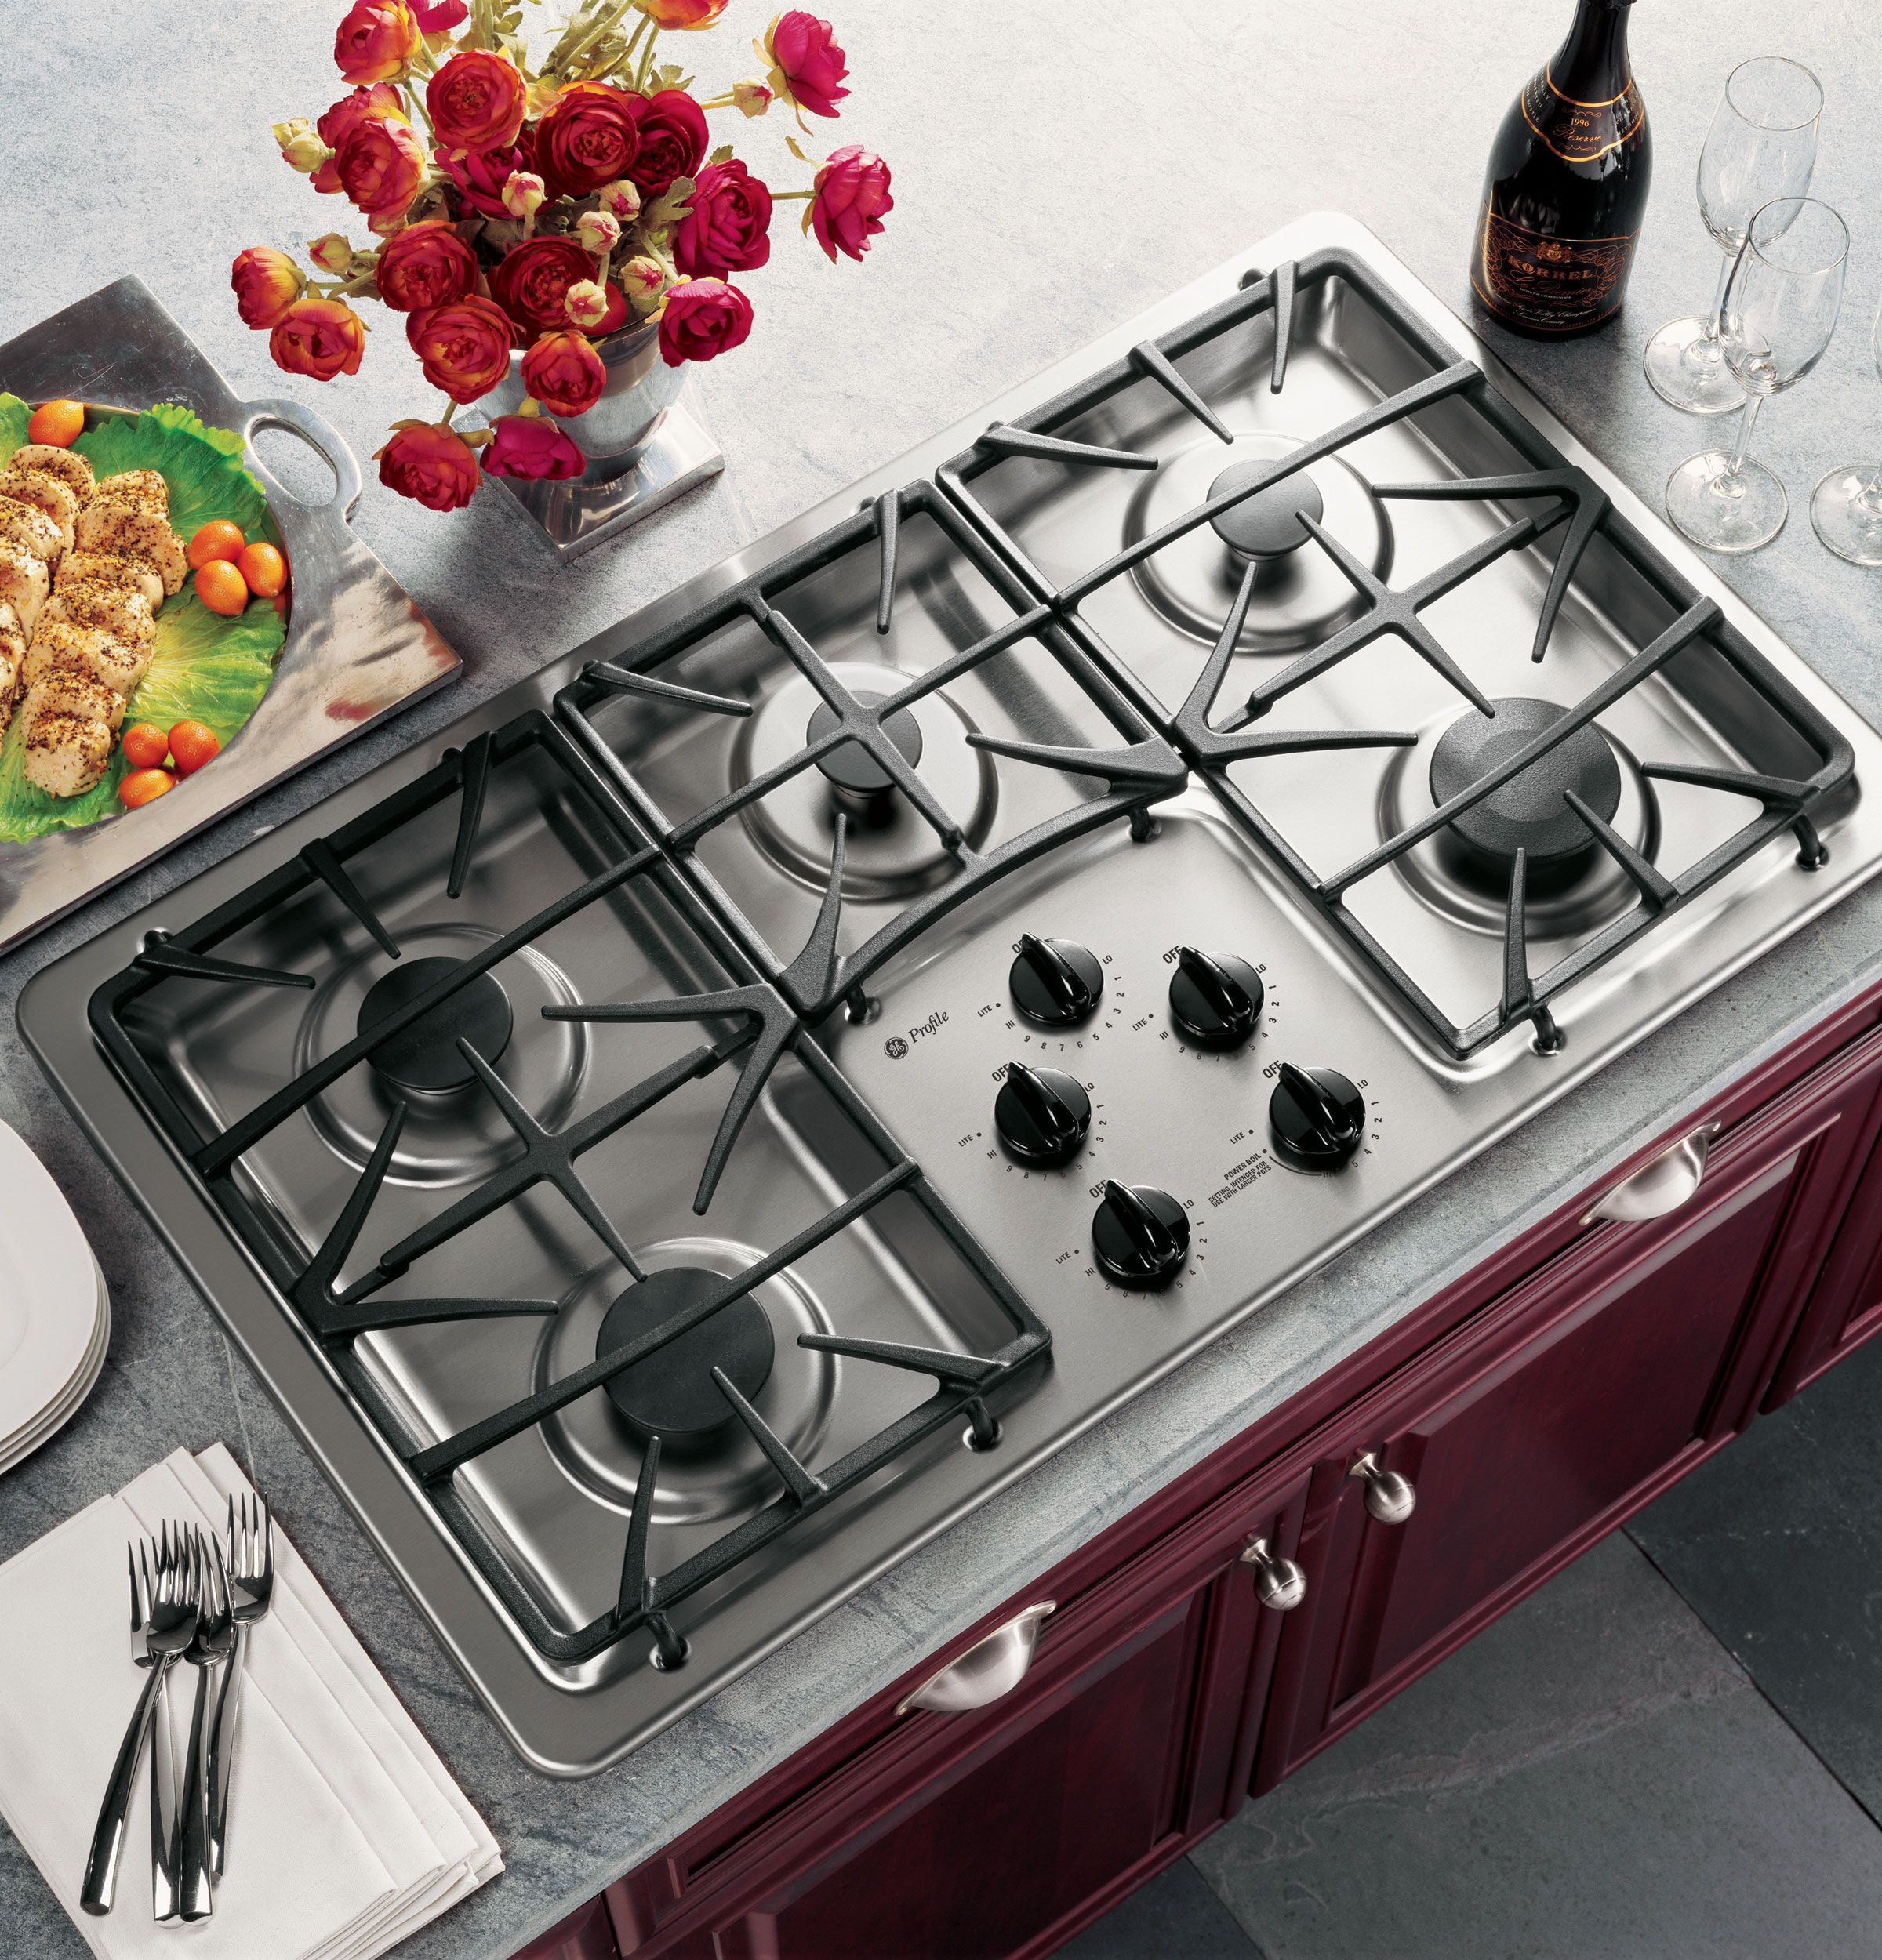 Ge Profile 36 Built In Gas Cooktop Jgp963sekss Cooktop Gas